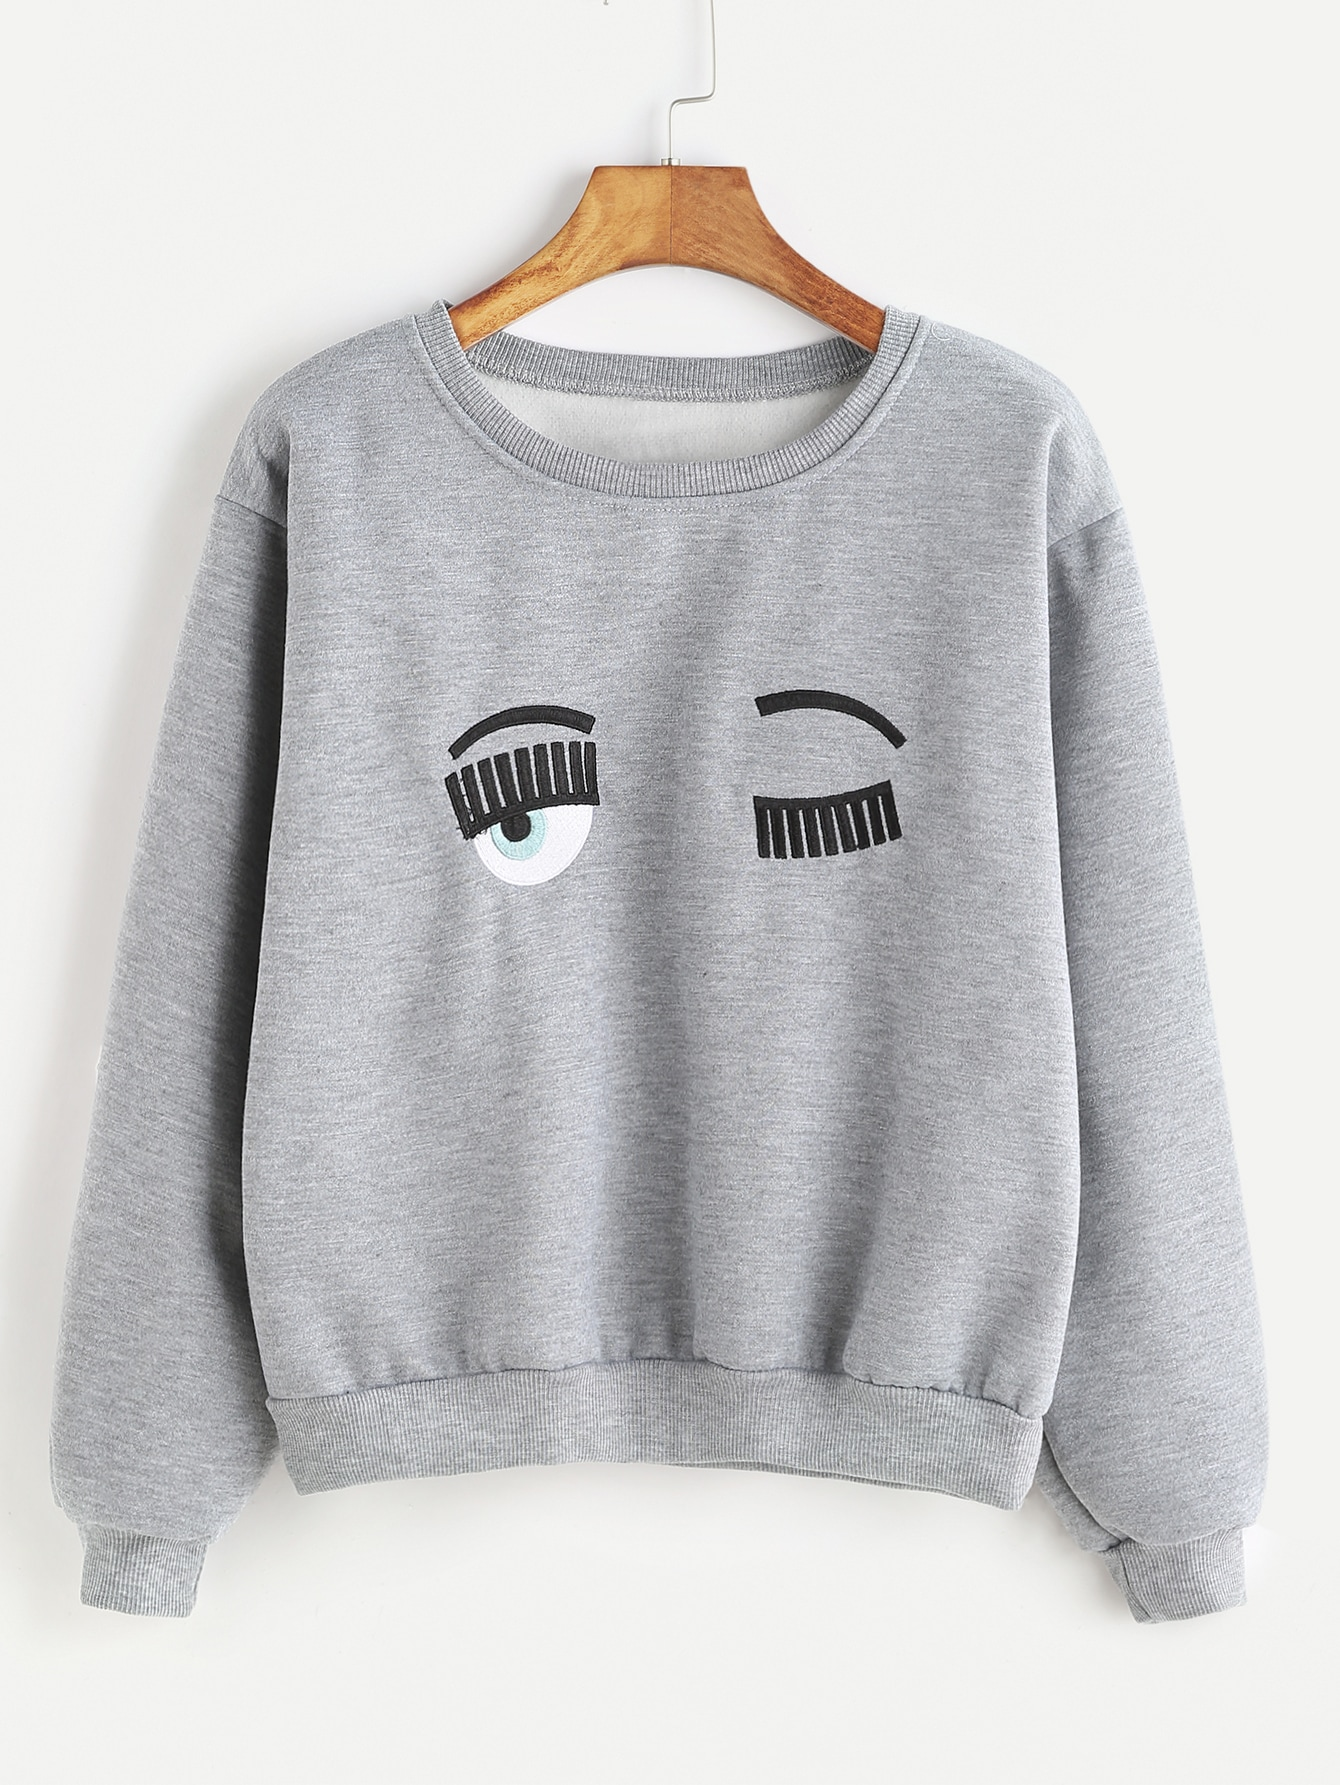 Grey Ribbed Trim Eyes Embroidered Sweatshirt sweatshirt161121101